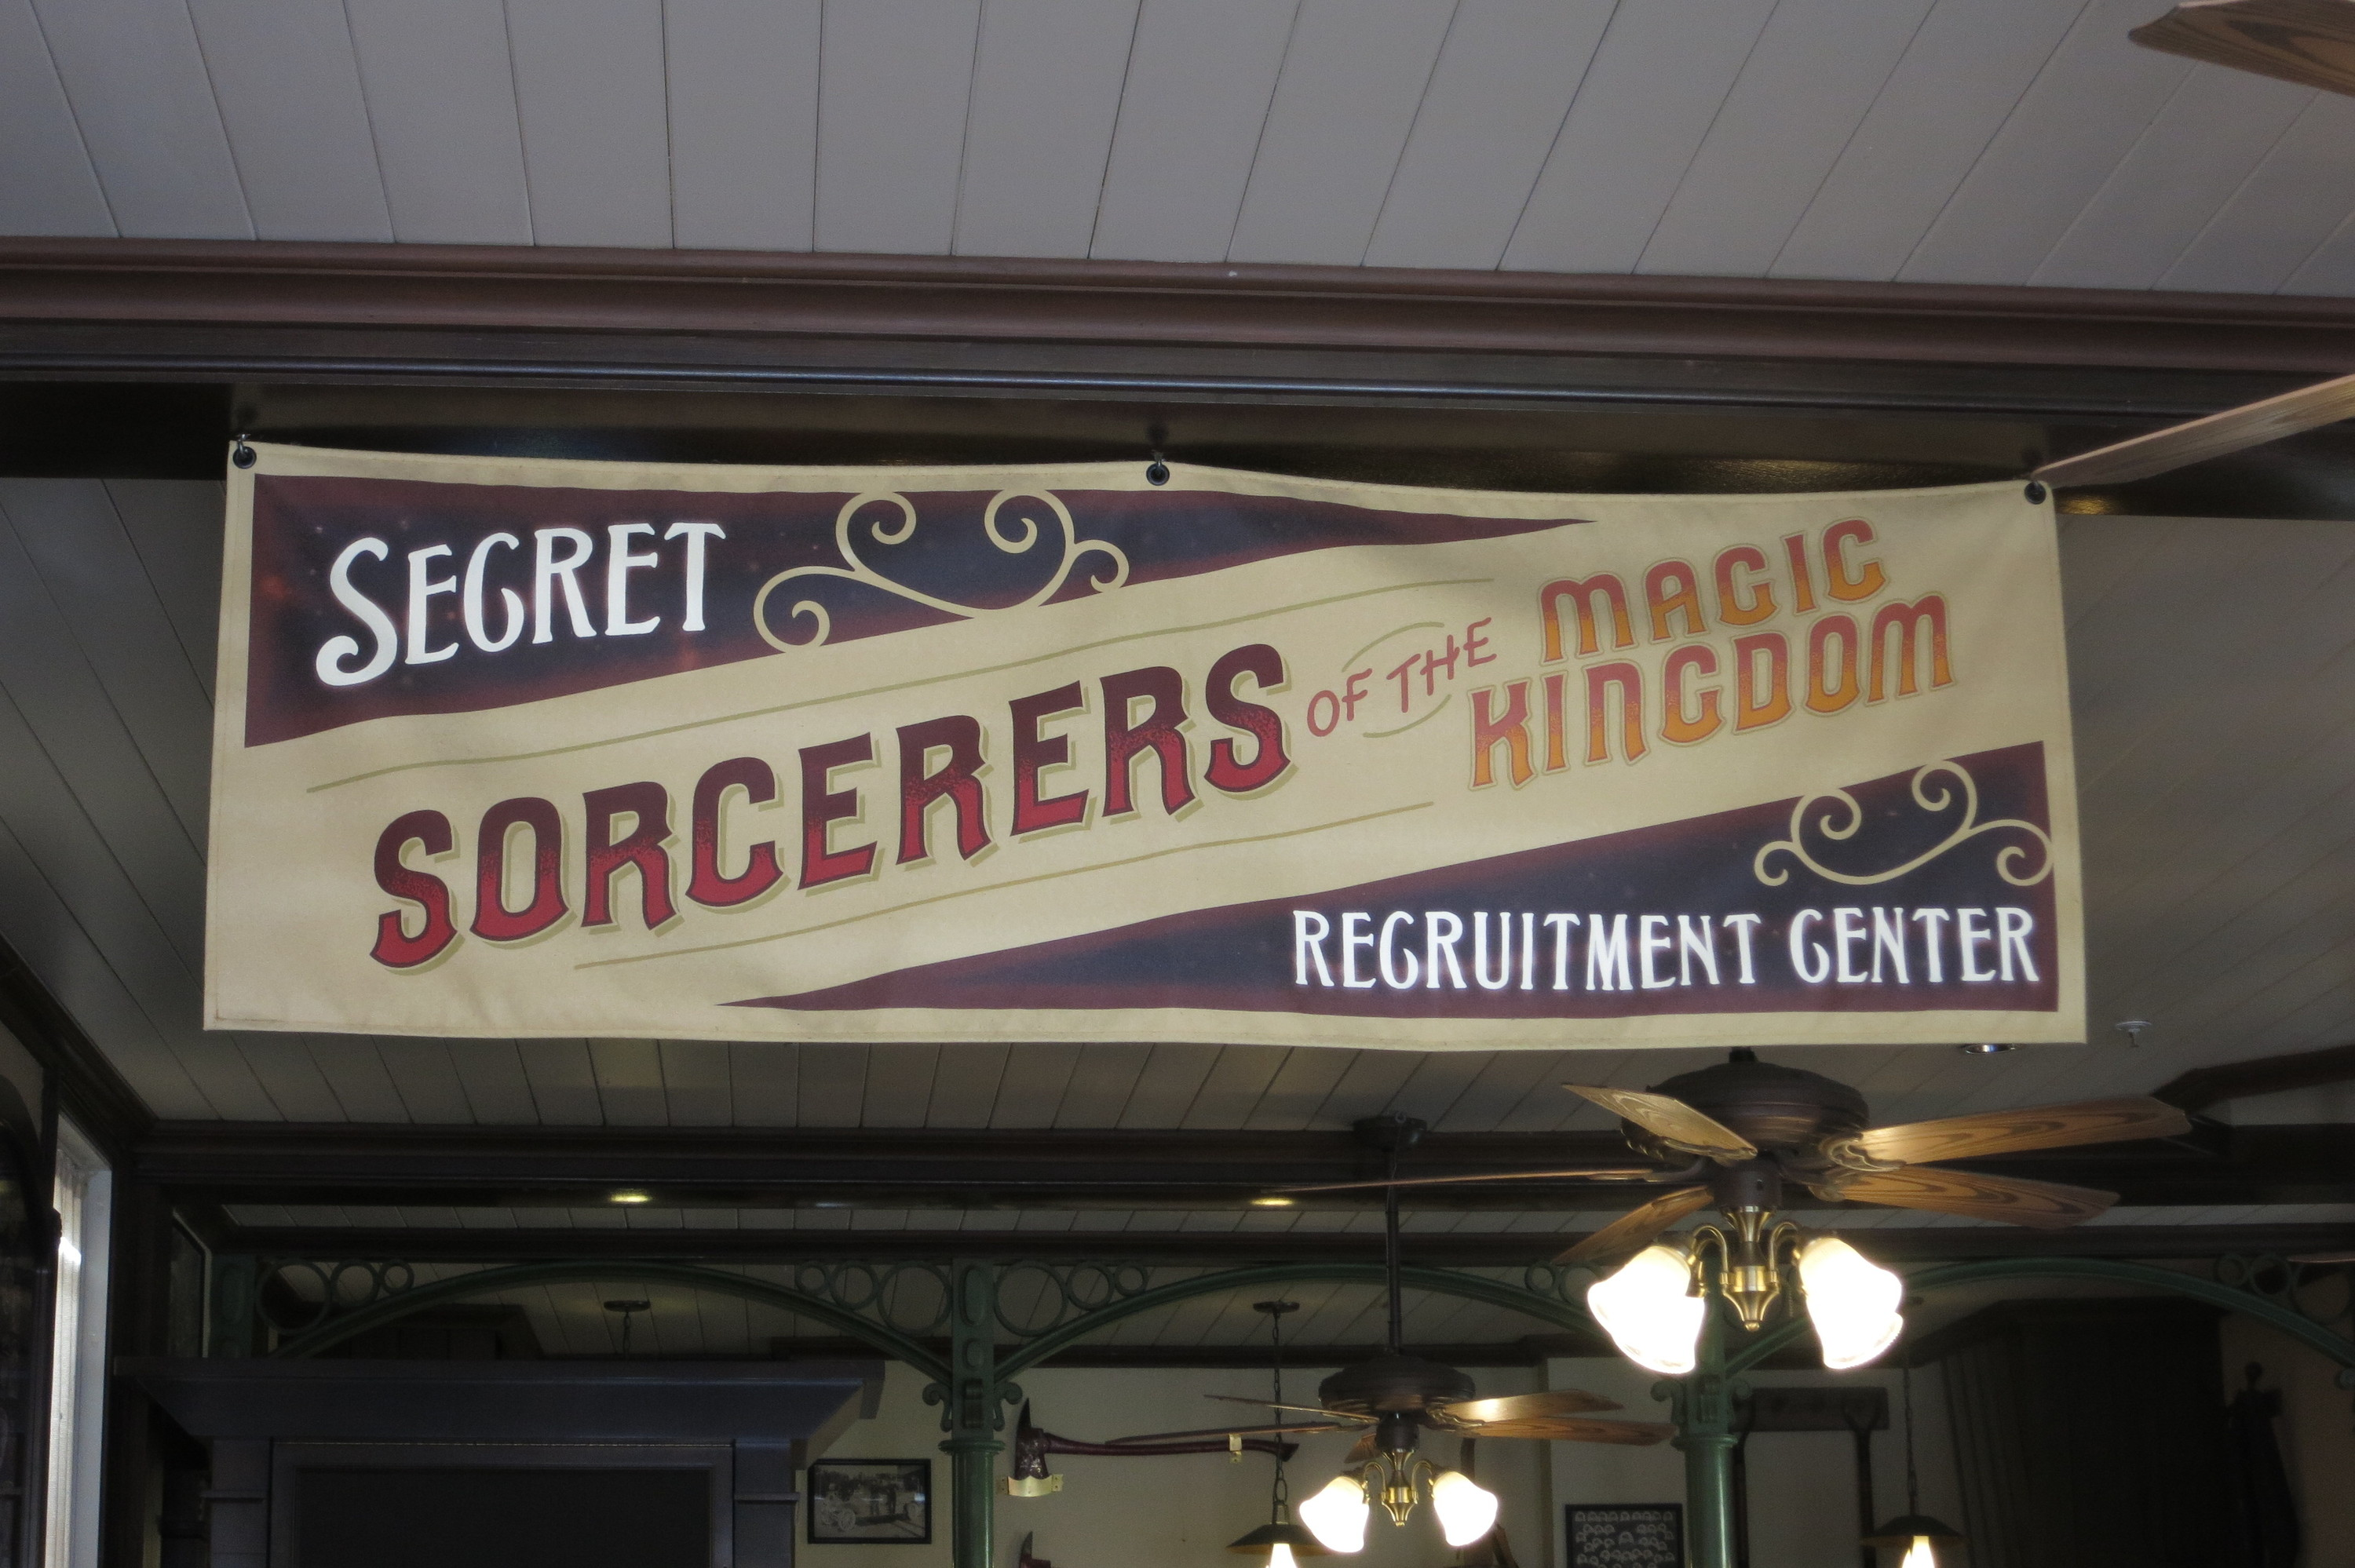 A large banner hanging from a wooden beam, with stylized font reading 'Secret Sorcerers of the Magic Kingdom Recruitment Center'. Beyond it is a cozy, rustic interior, with light fixings on the ceiling that have wooden fan blades attached.